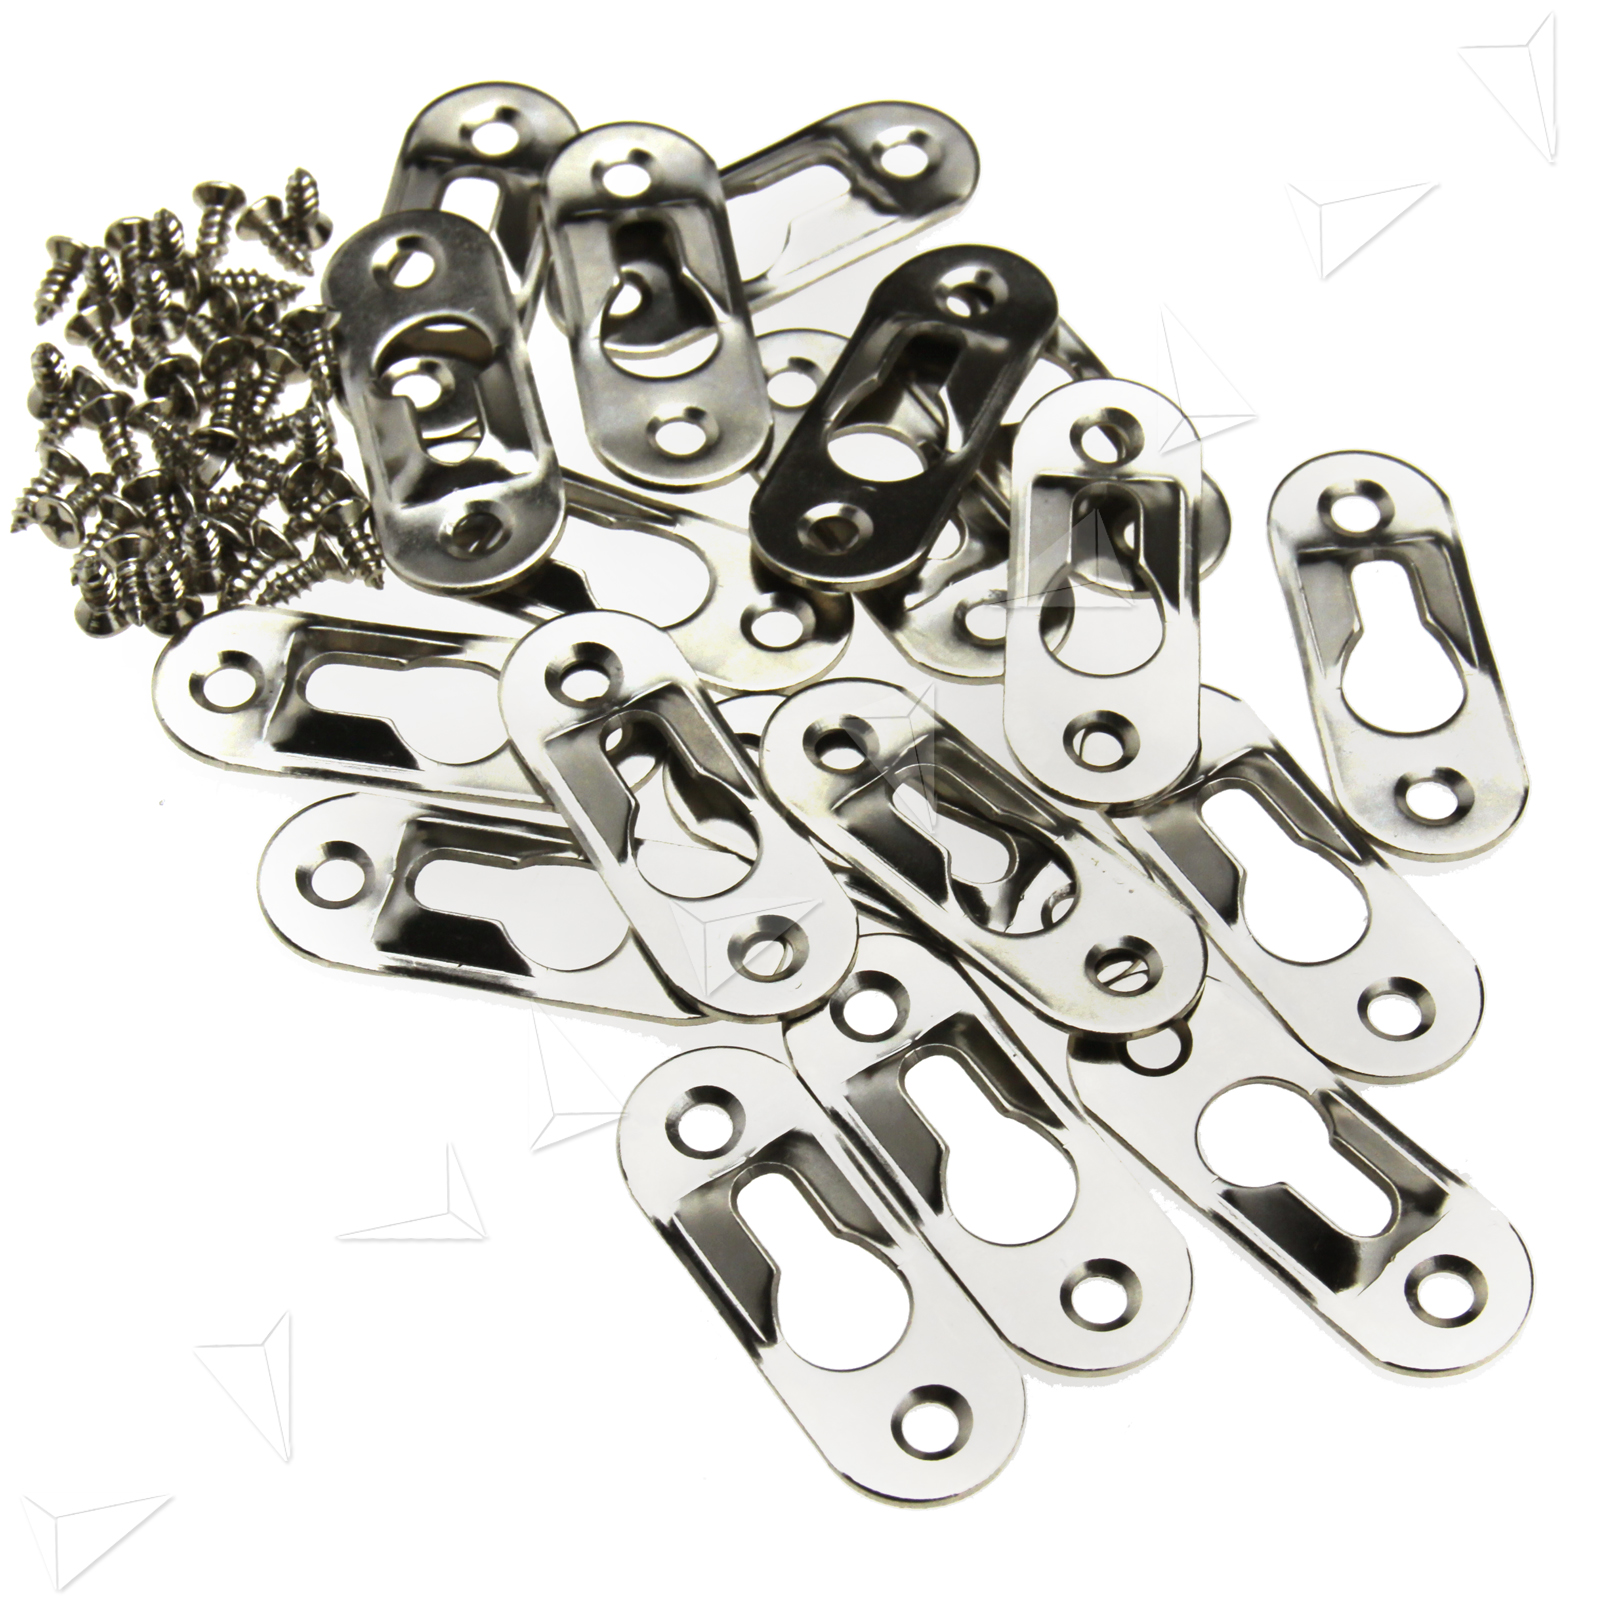 20pcs Keyhole Hanger Fasteners for Picture Frames Mirrors Cabinet 42mm x 16mm